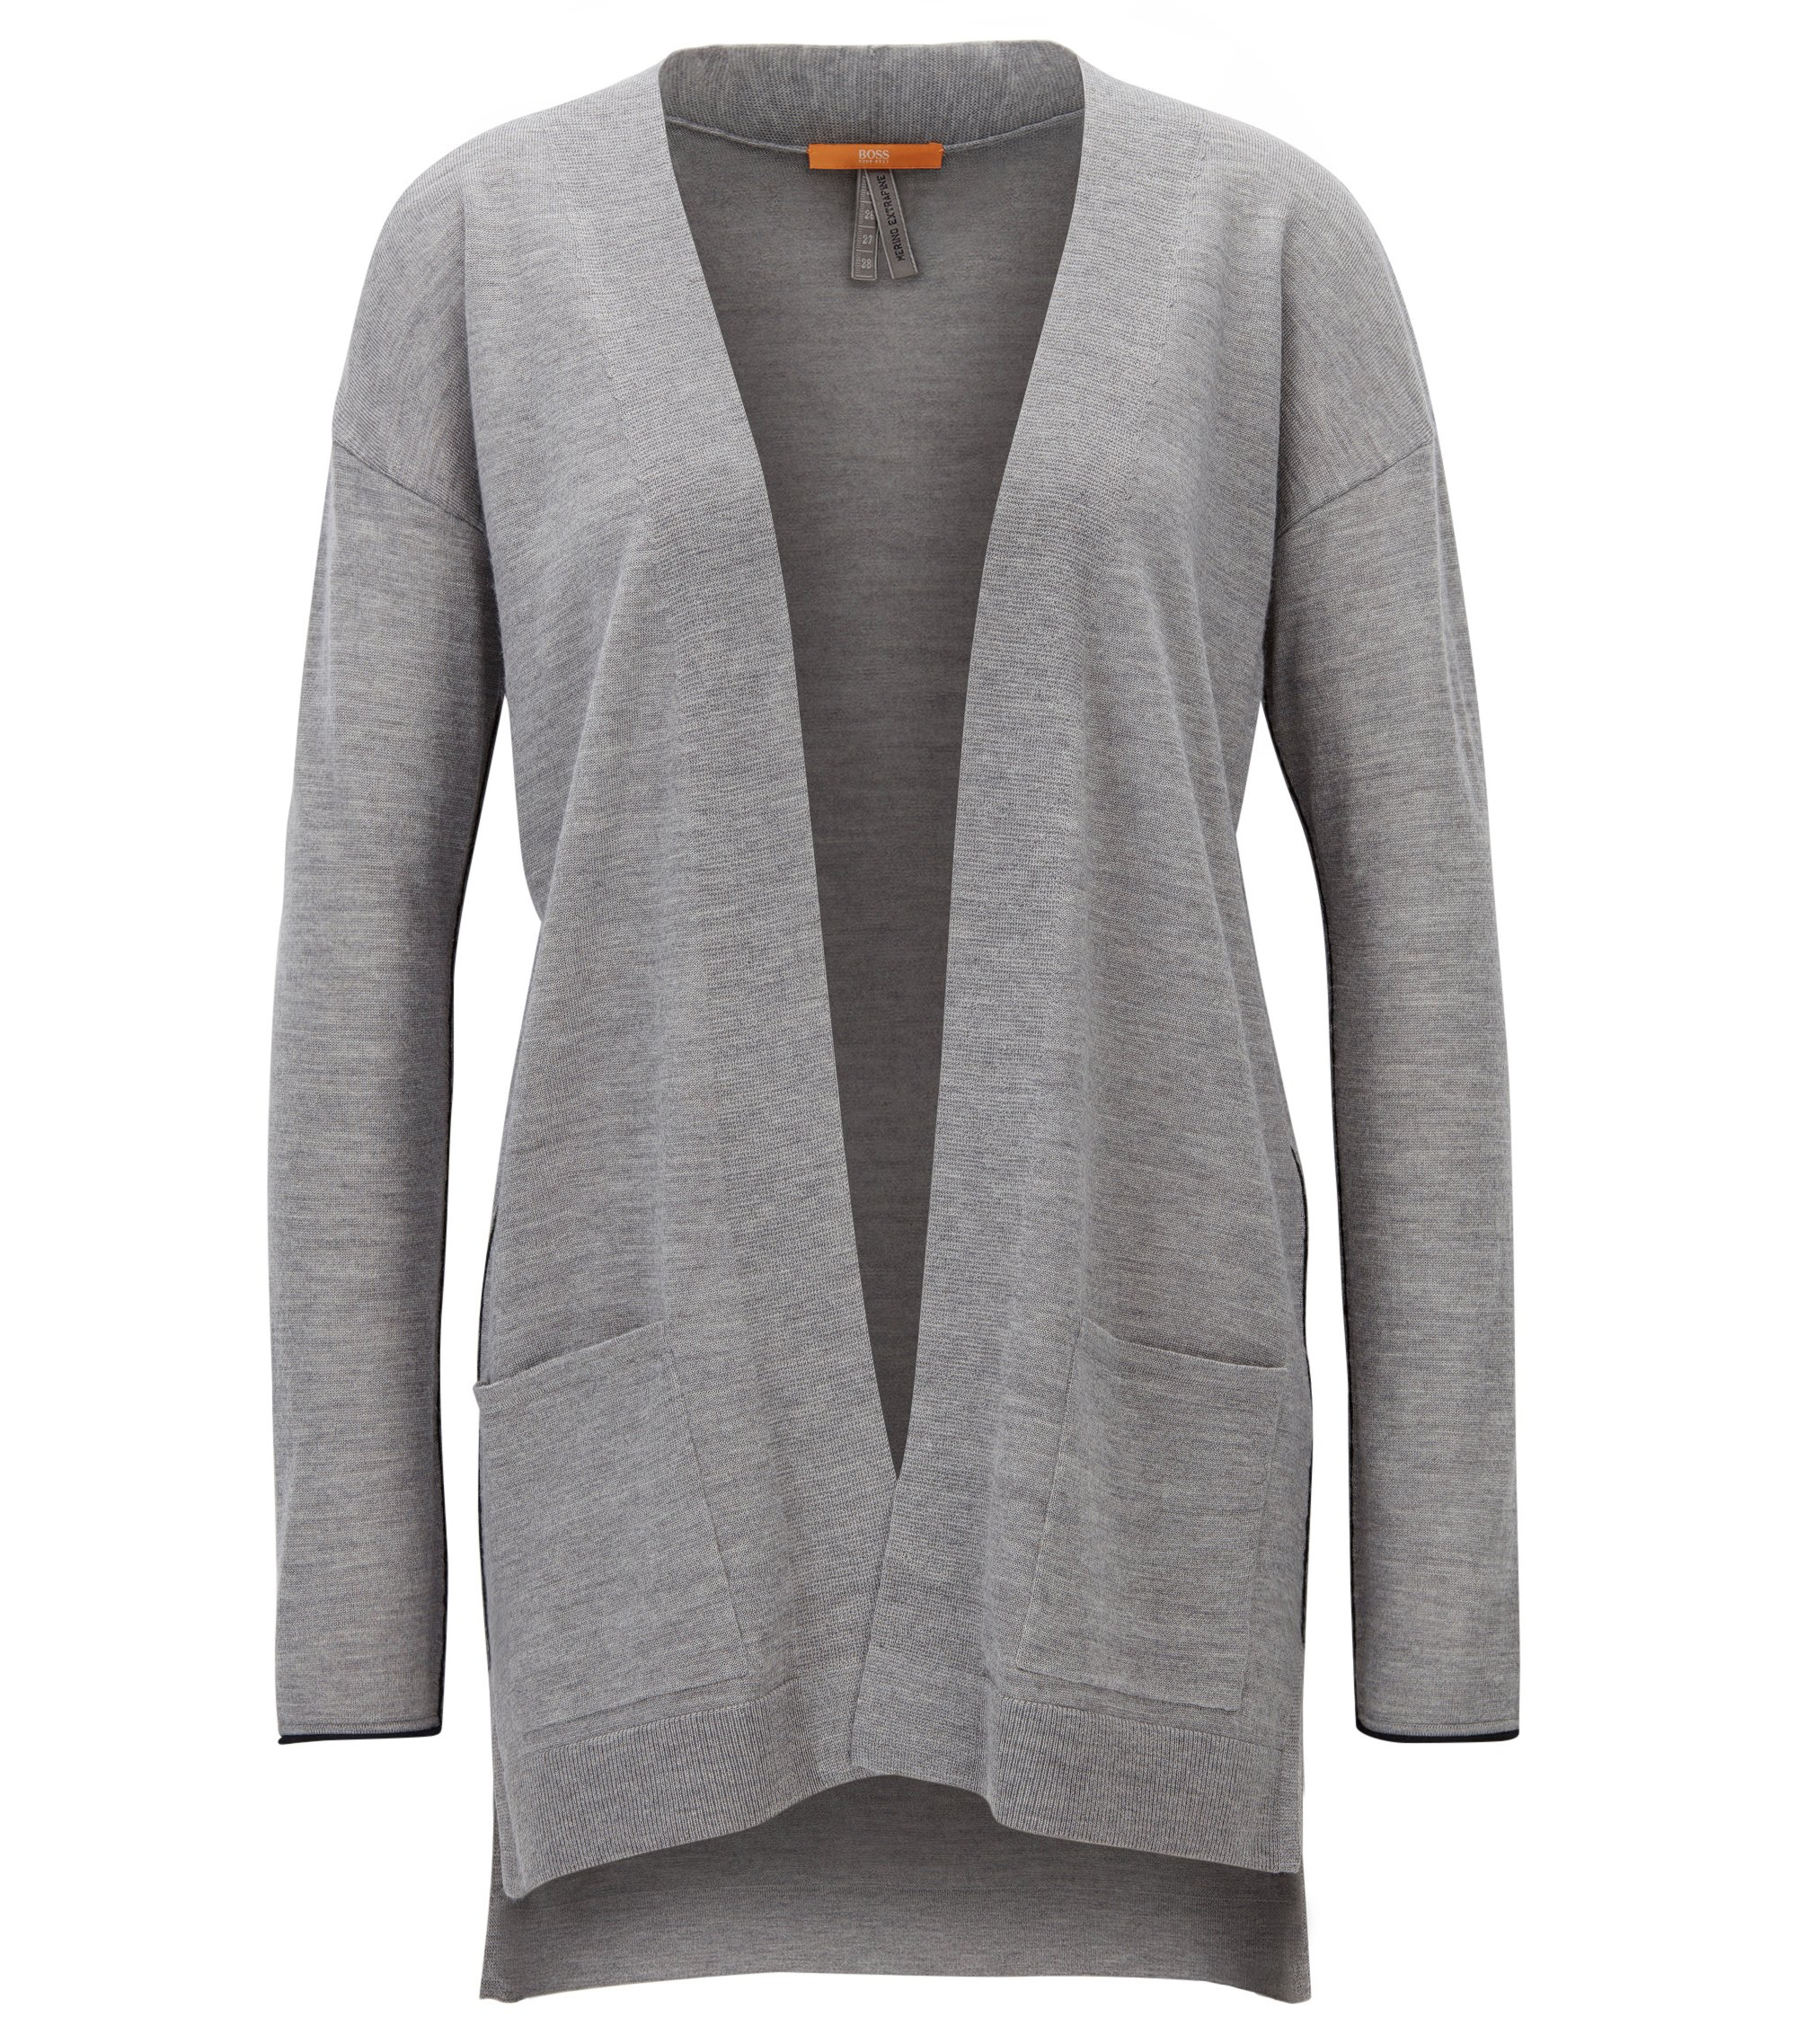 Langer Relaxed-Fit Cardigan aus Schurwolle, Grau